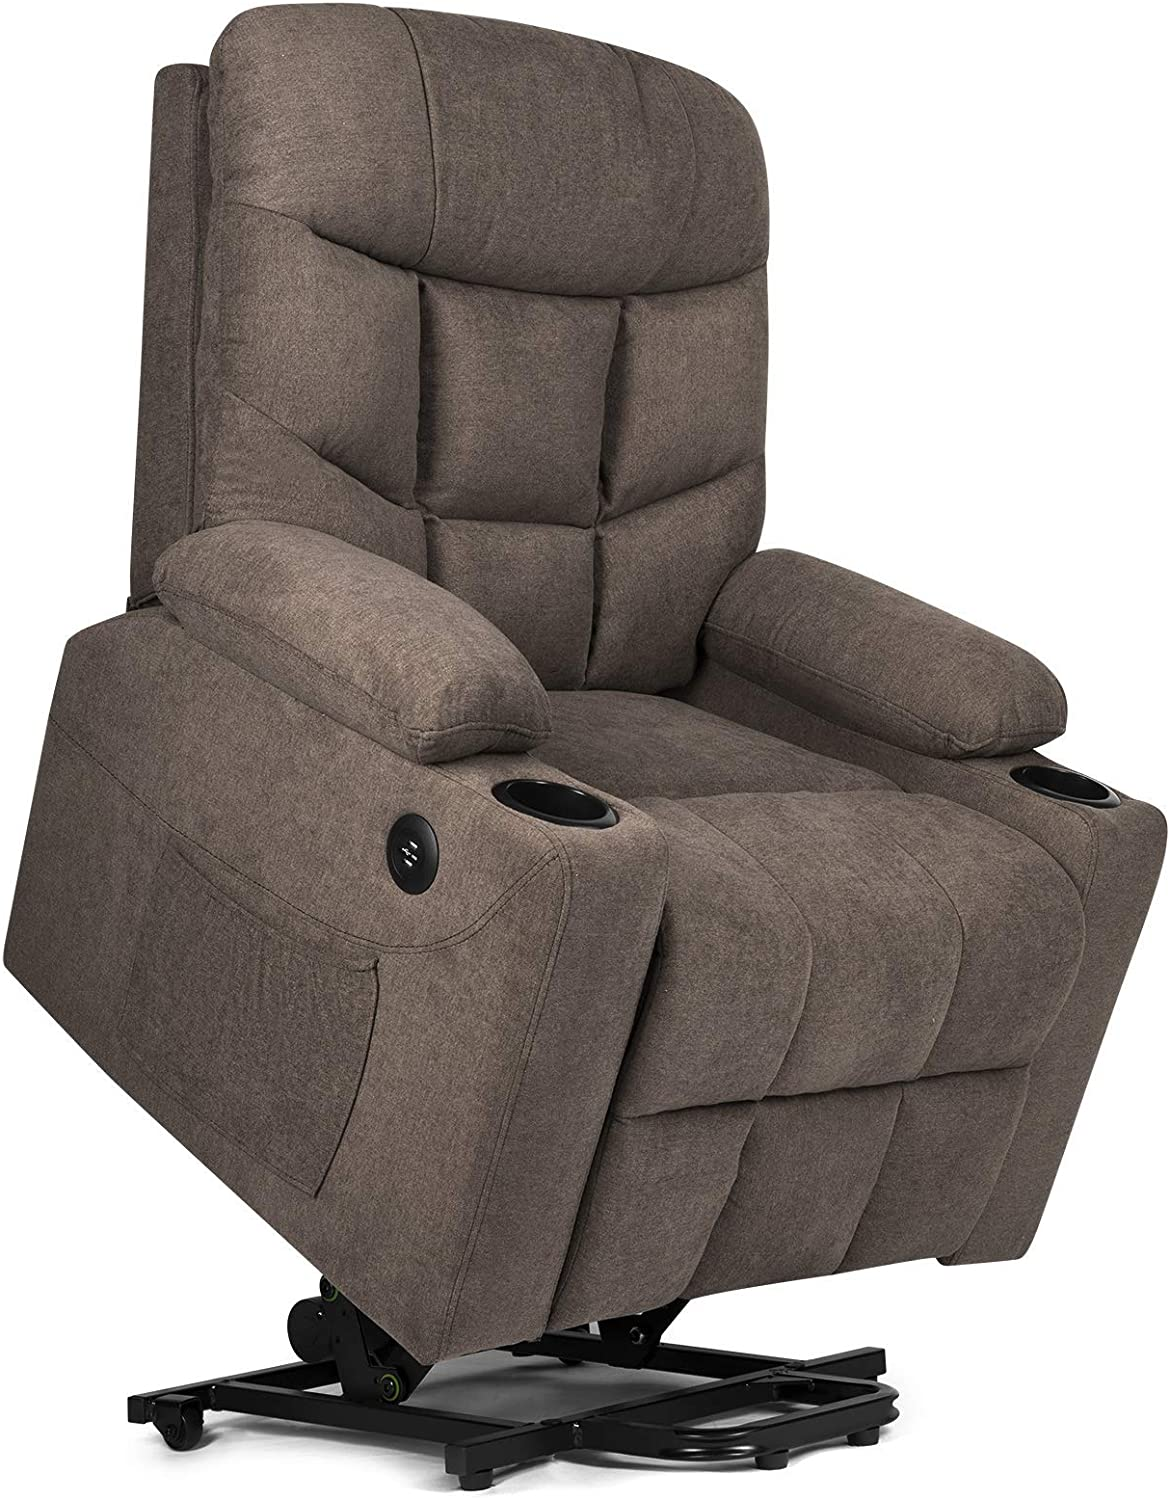 71MmduqR2lL. AC SL1500 - What Are The Best Living Room Chair For Lower Back Pain - ChairPicks